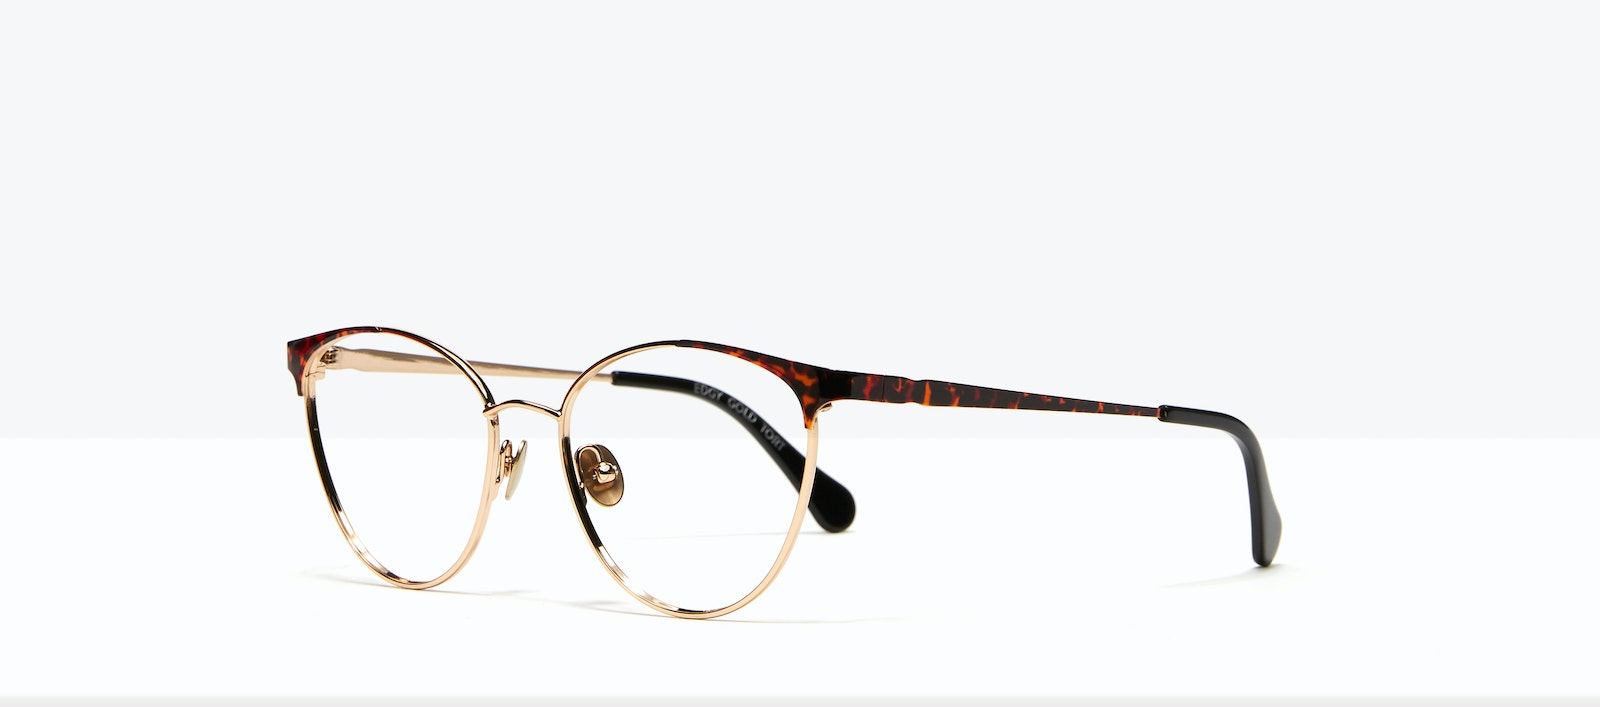 Affordable Fashion Glasses Cat Eye Eyeglasses Women Edgy Gold Tort Tilt